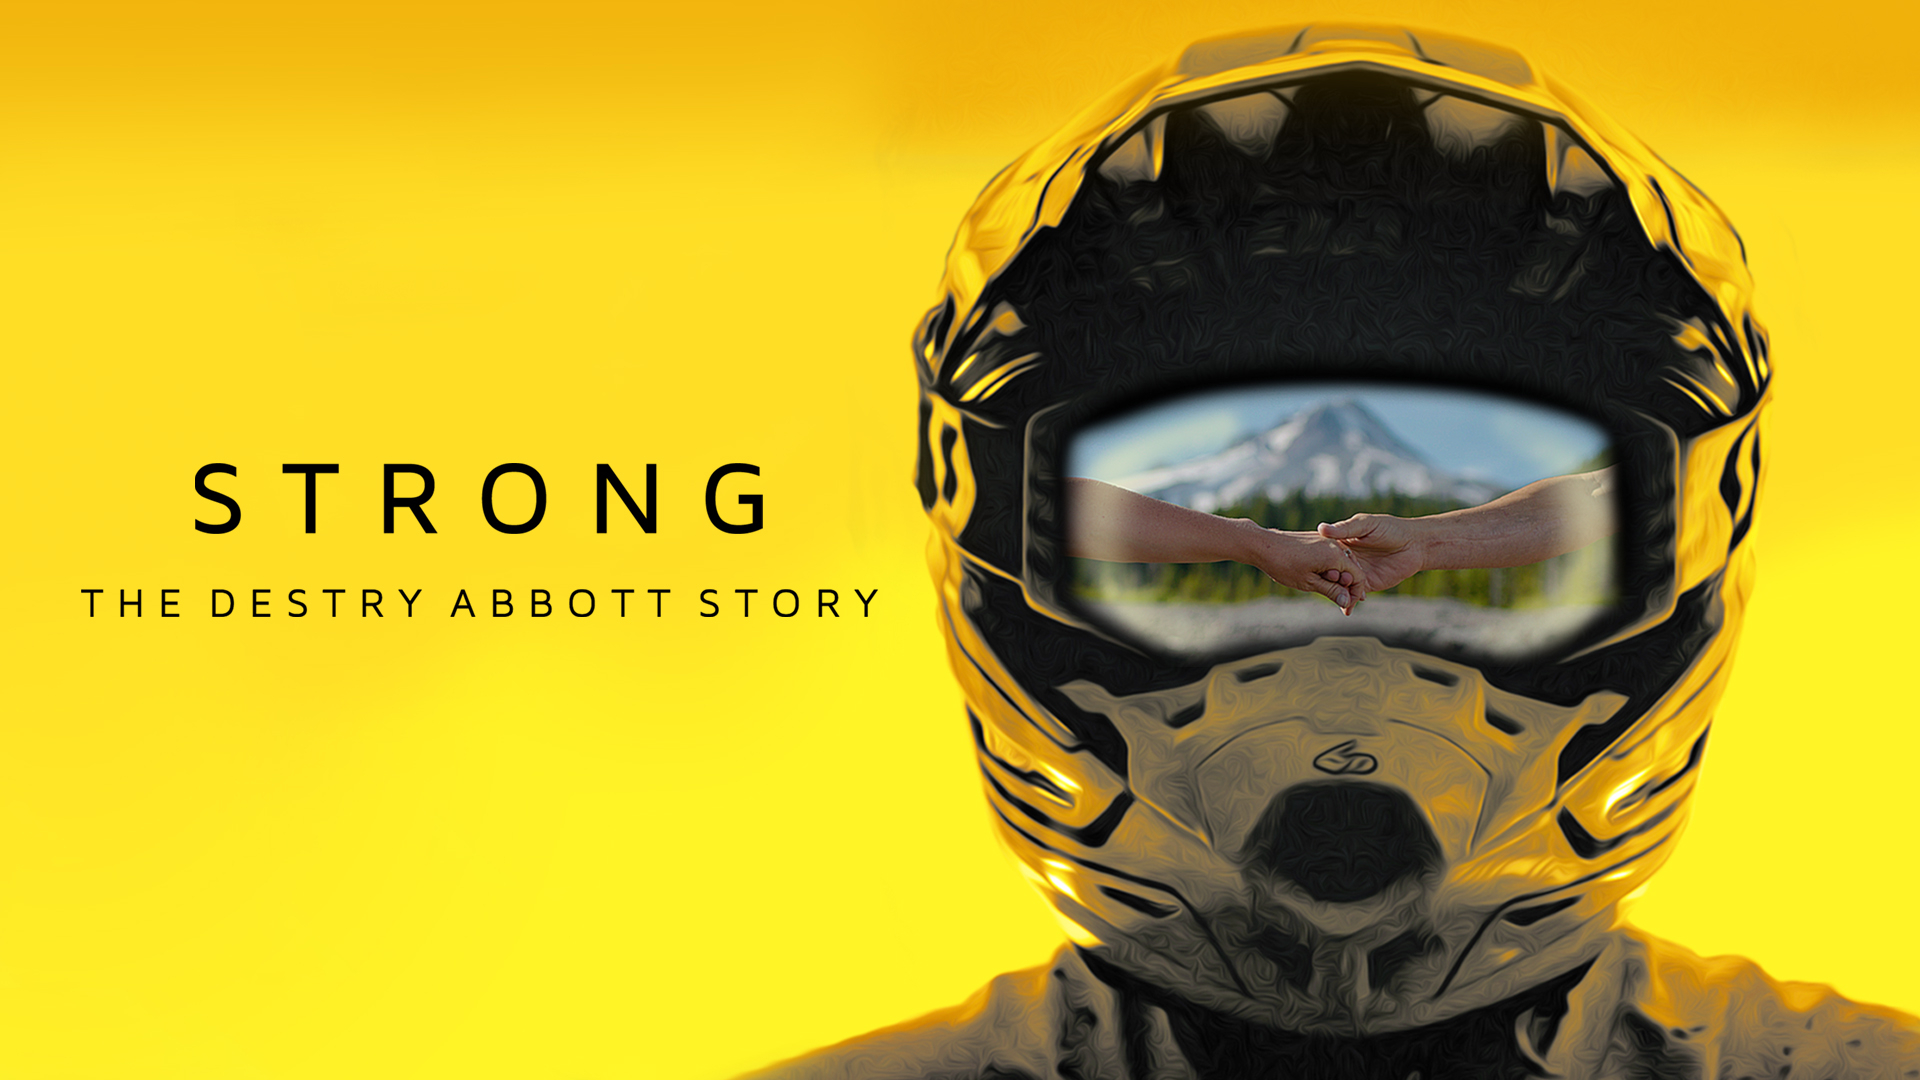 Strong: The Destry Abbott Story